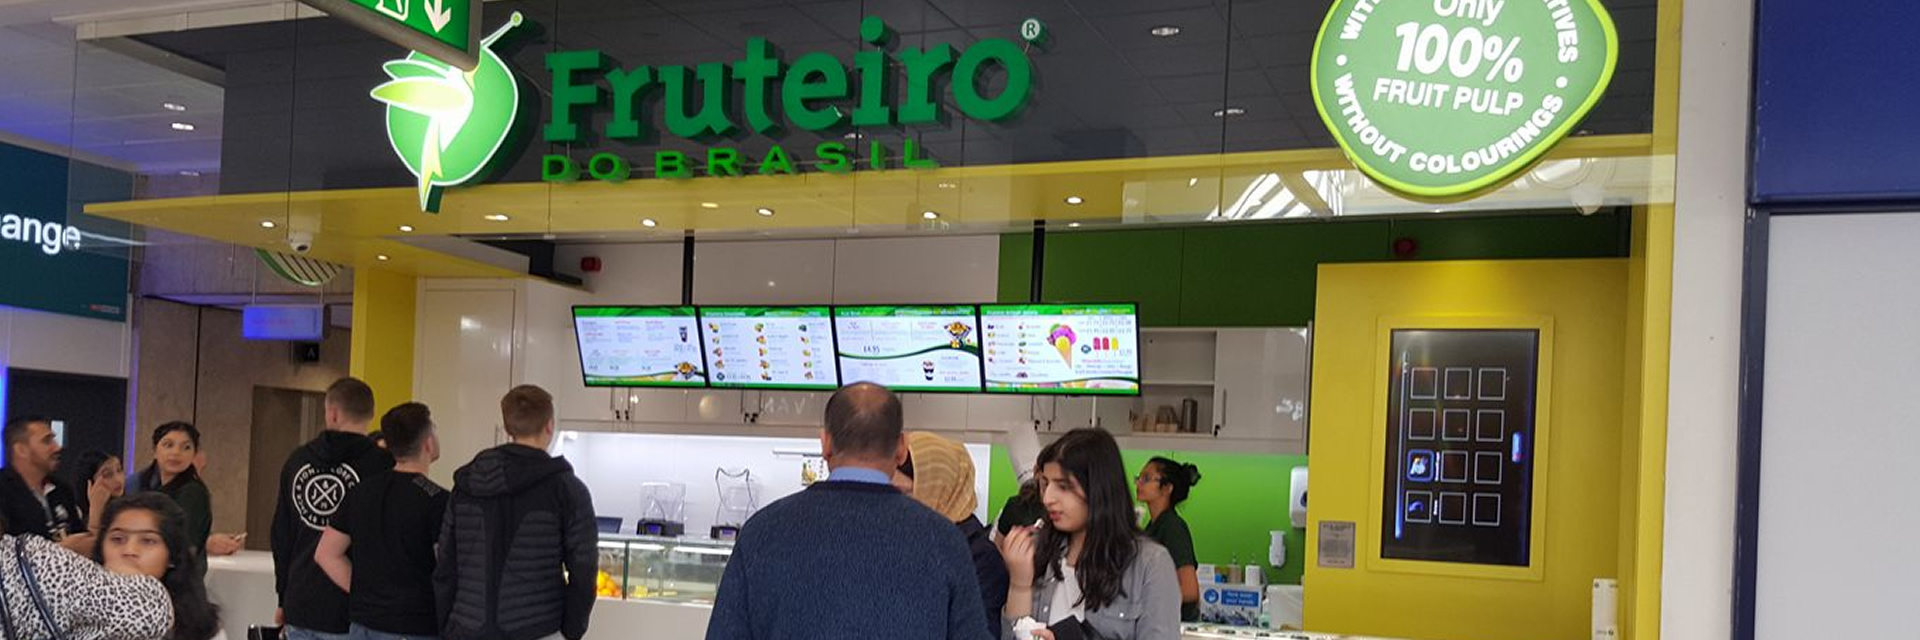 Digital Menu Board installation at Fruteiro in Manchester